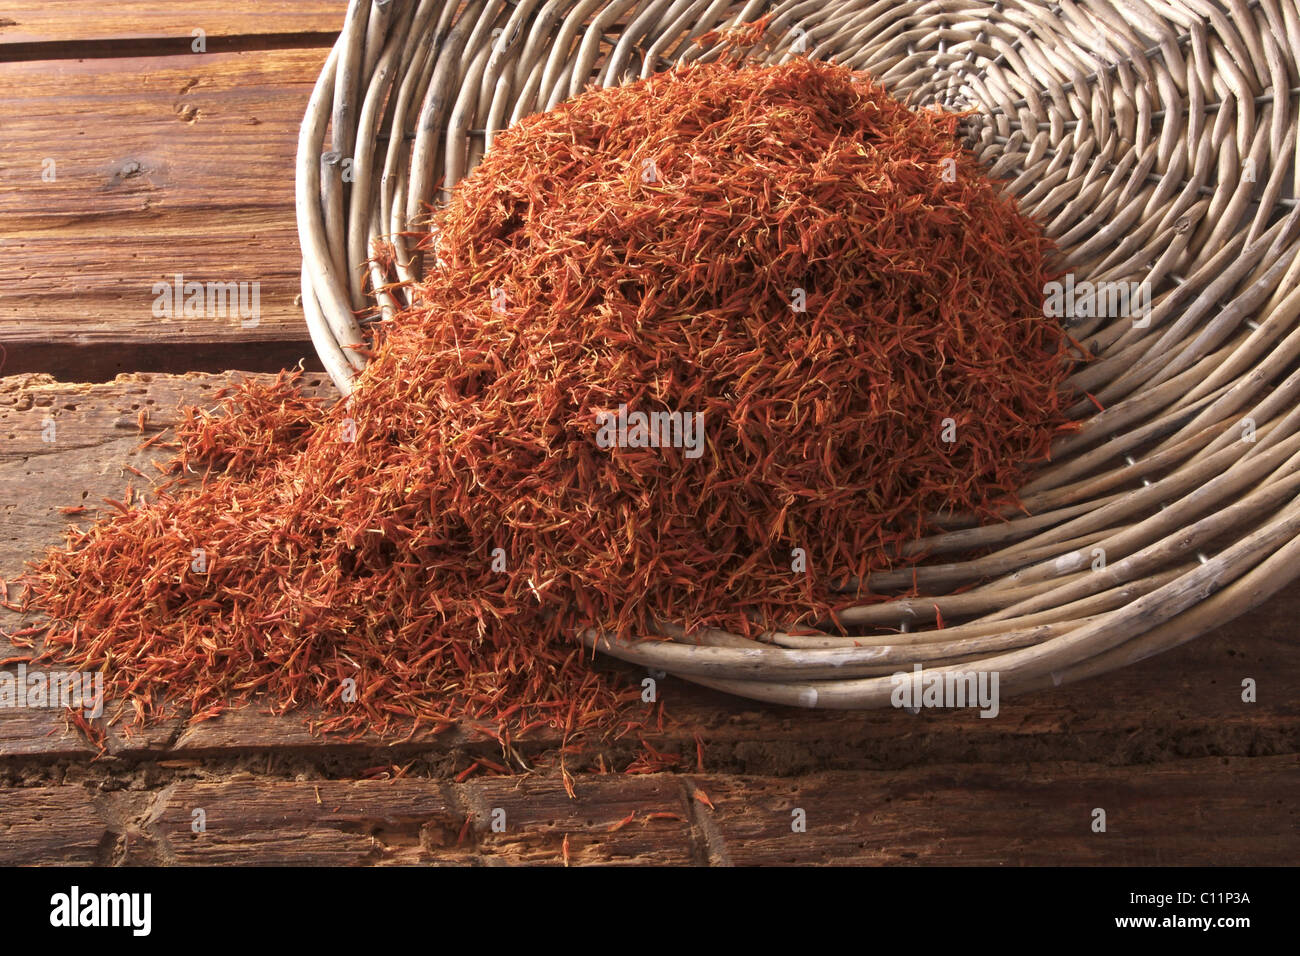 Safflower (Carthamus tinctorius), as tea or food coloring, saffron substitute, tipped out of a willow basket - Stock Image